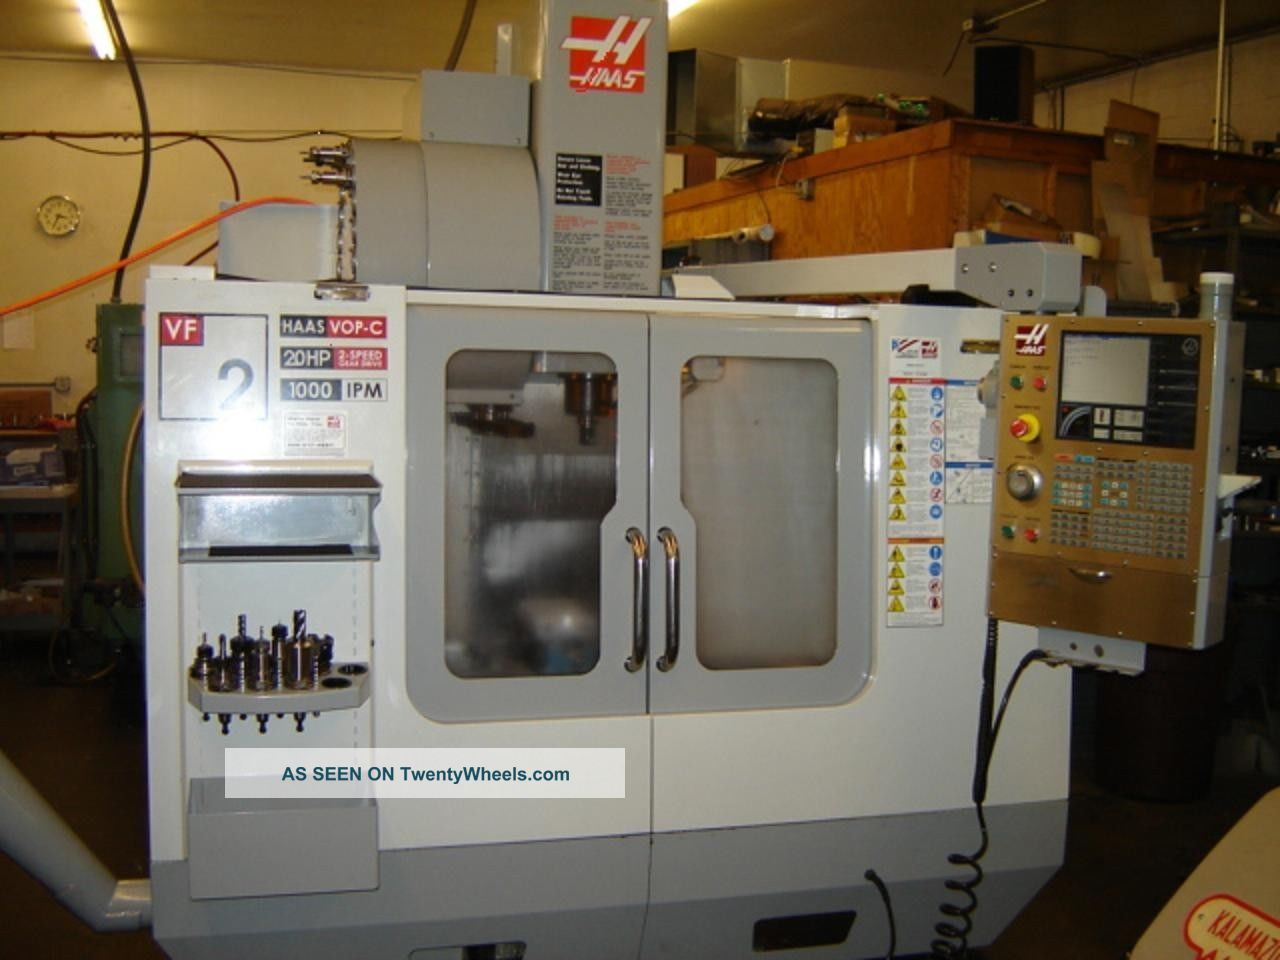 Haas Vf2 Vertical Machining Center (2007) Milling Machines photo